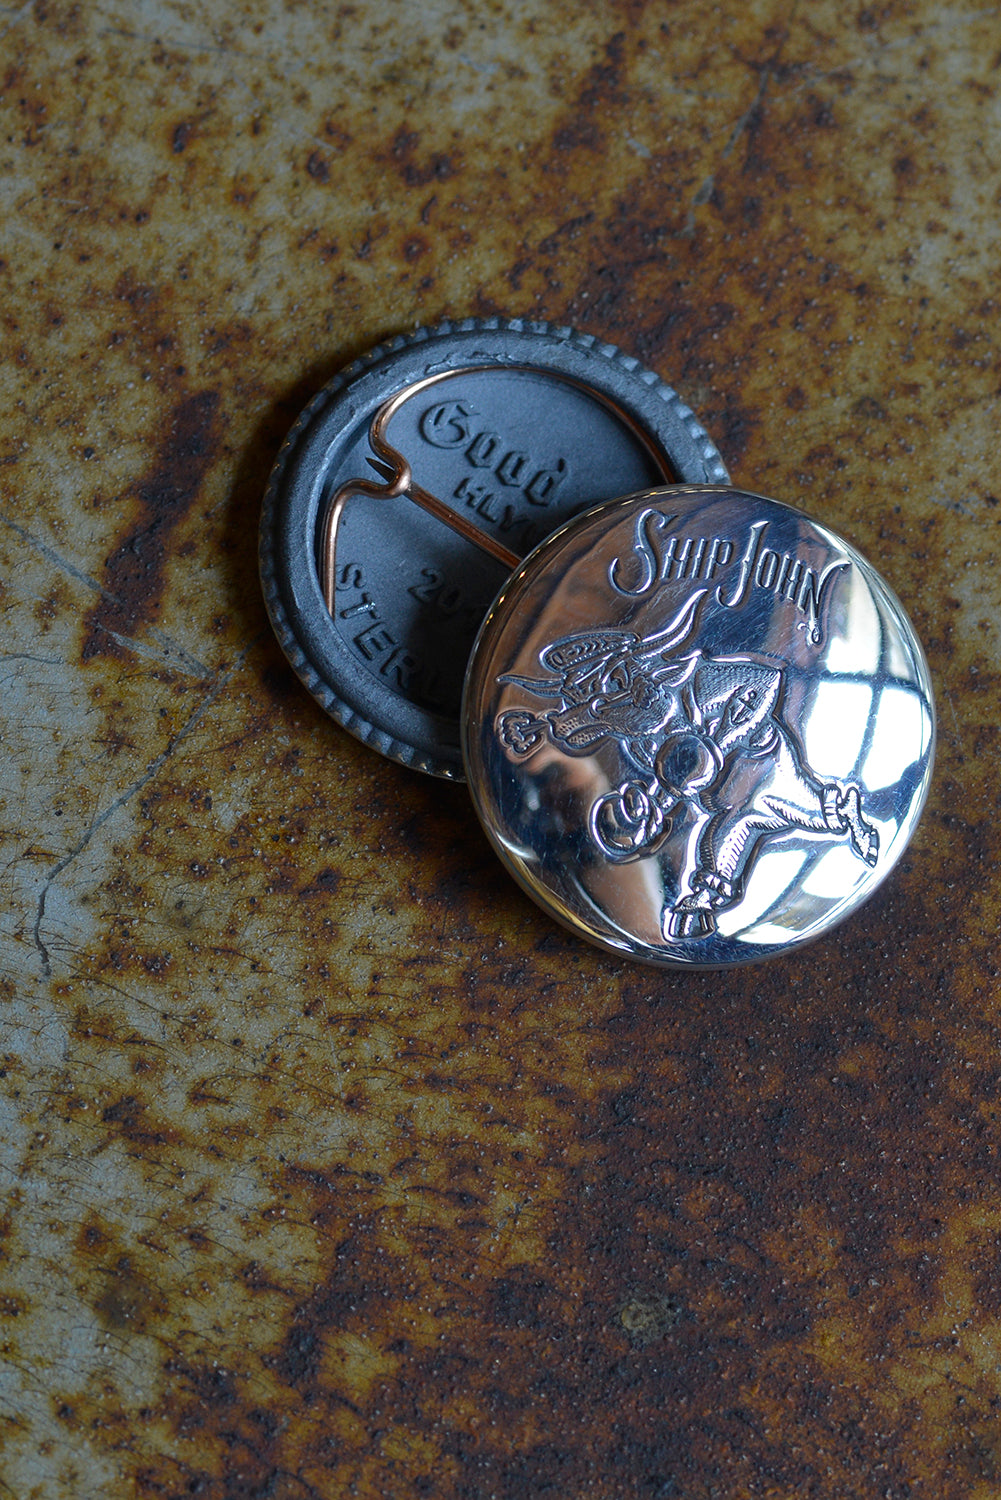 Good Art HLYWD x Ship John Fighting Bull Pin - Silver